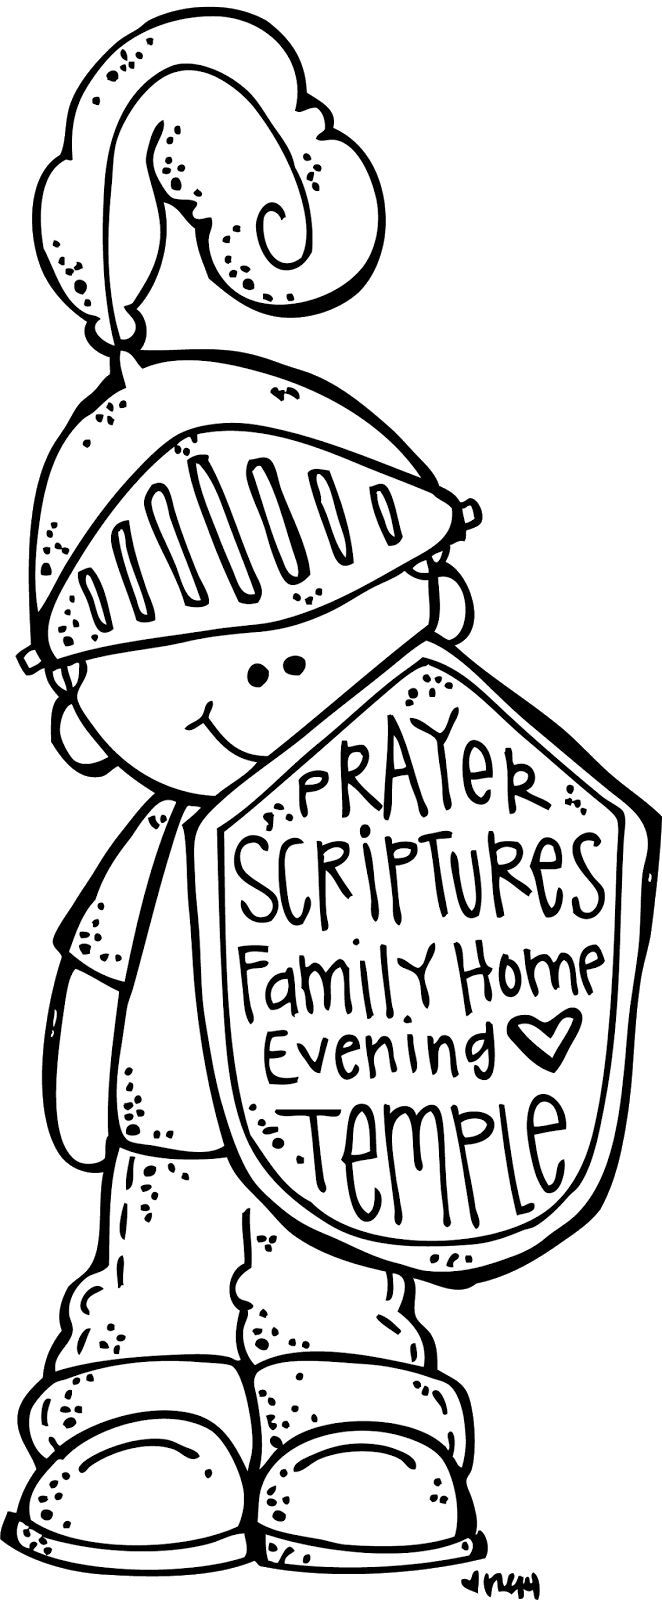 armadura Lds coloring pages